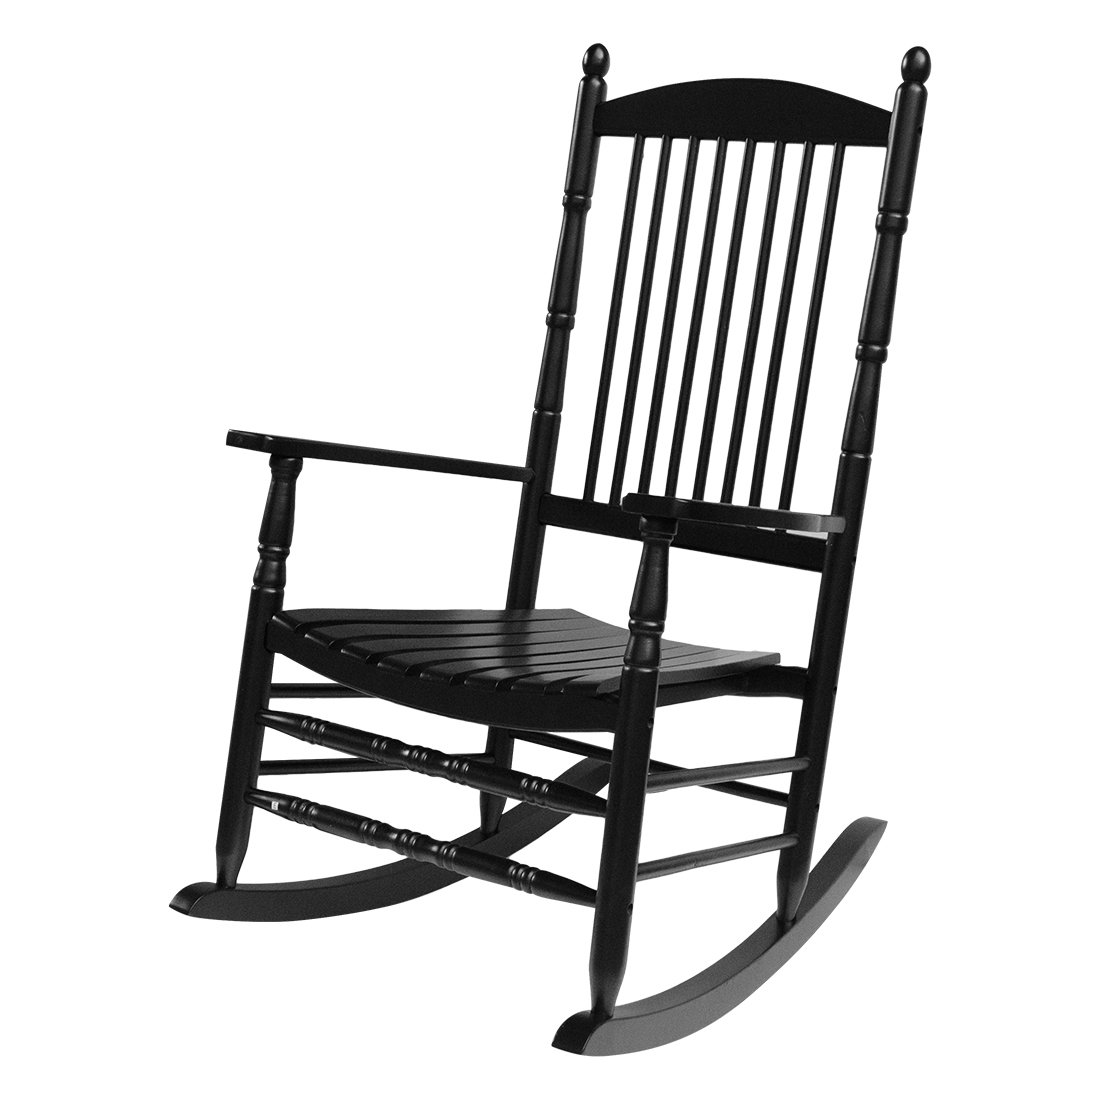 Black outdoor rocking chair - Amazon Com Caymus Black Solid Hardwood Outdoor Rocking Chair Country Plantation Porch Rocker Provide Comfortable Seating On Patio Or Deck Patio